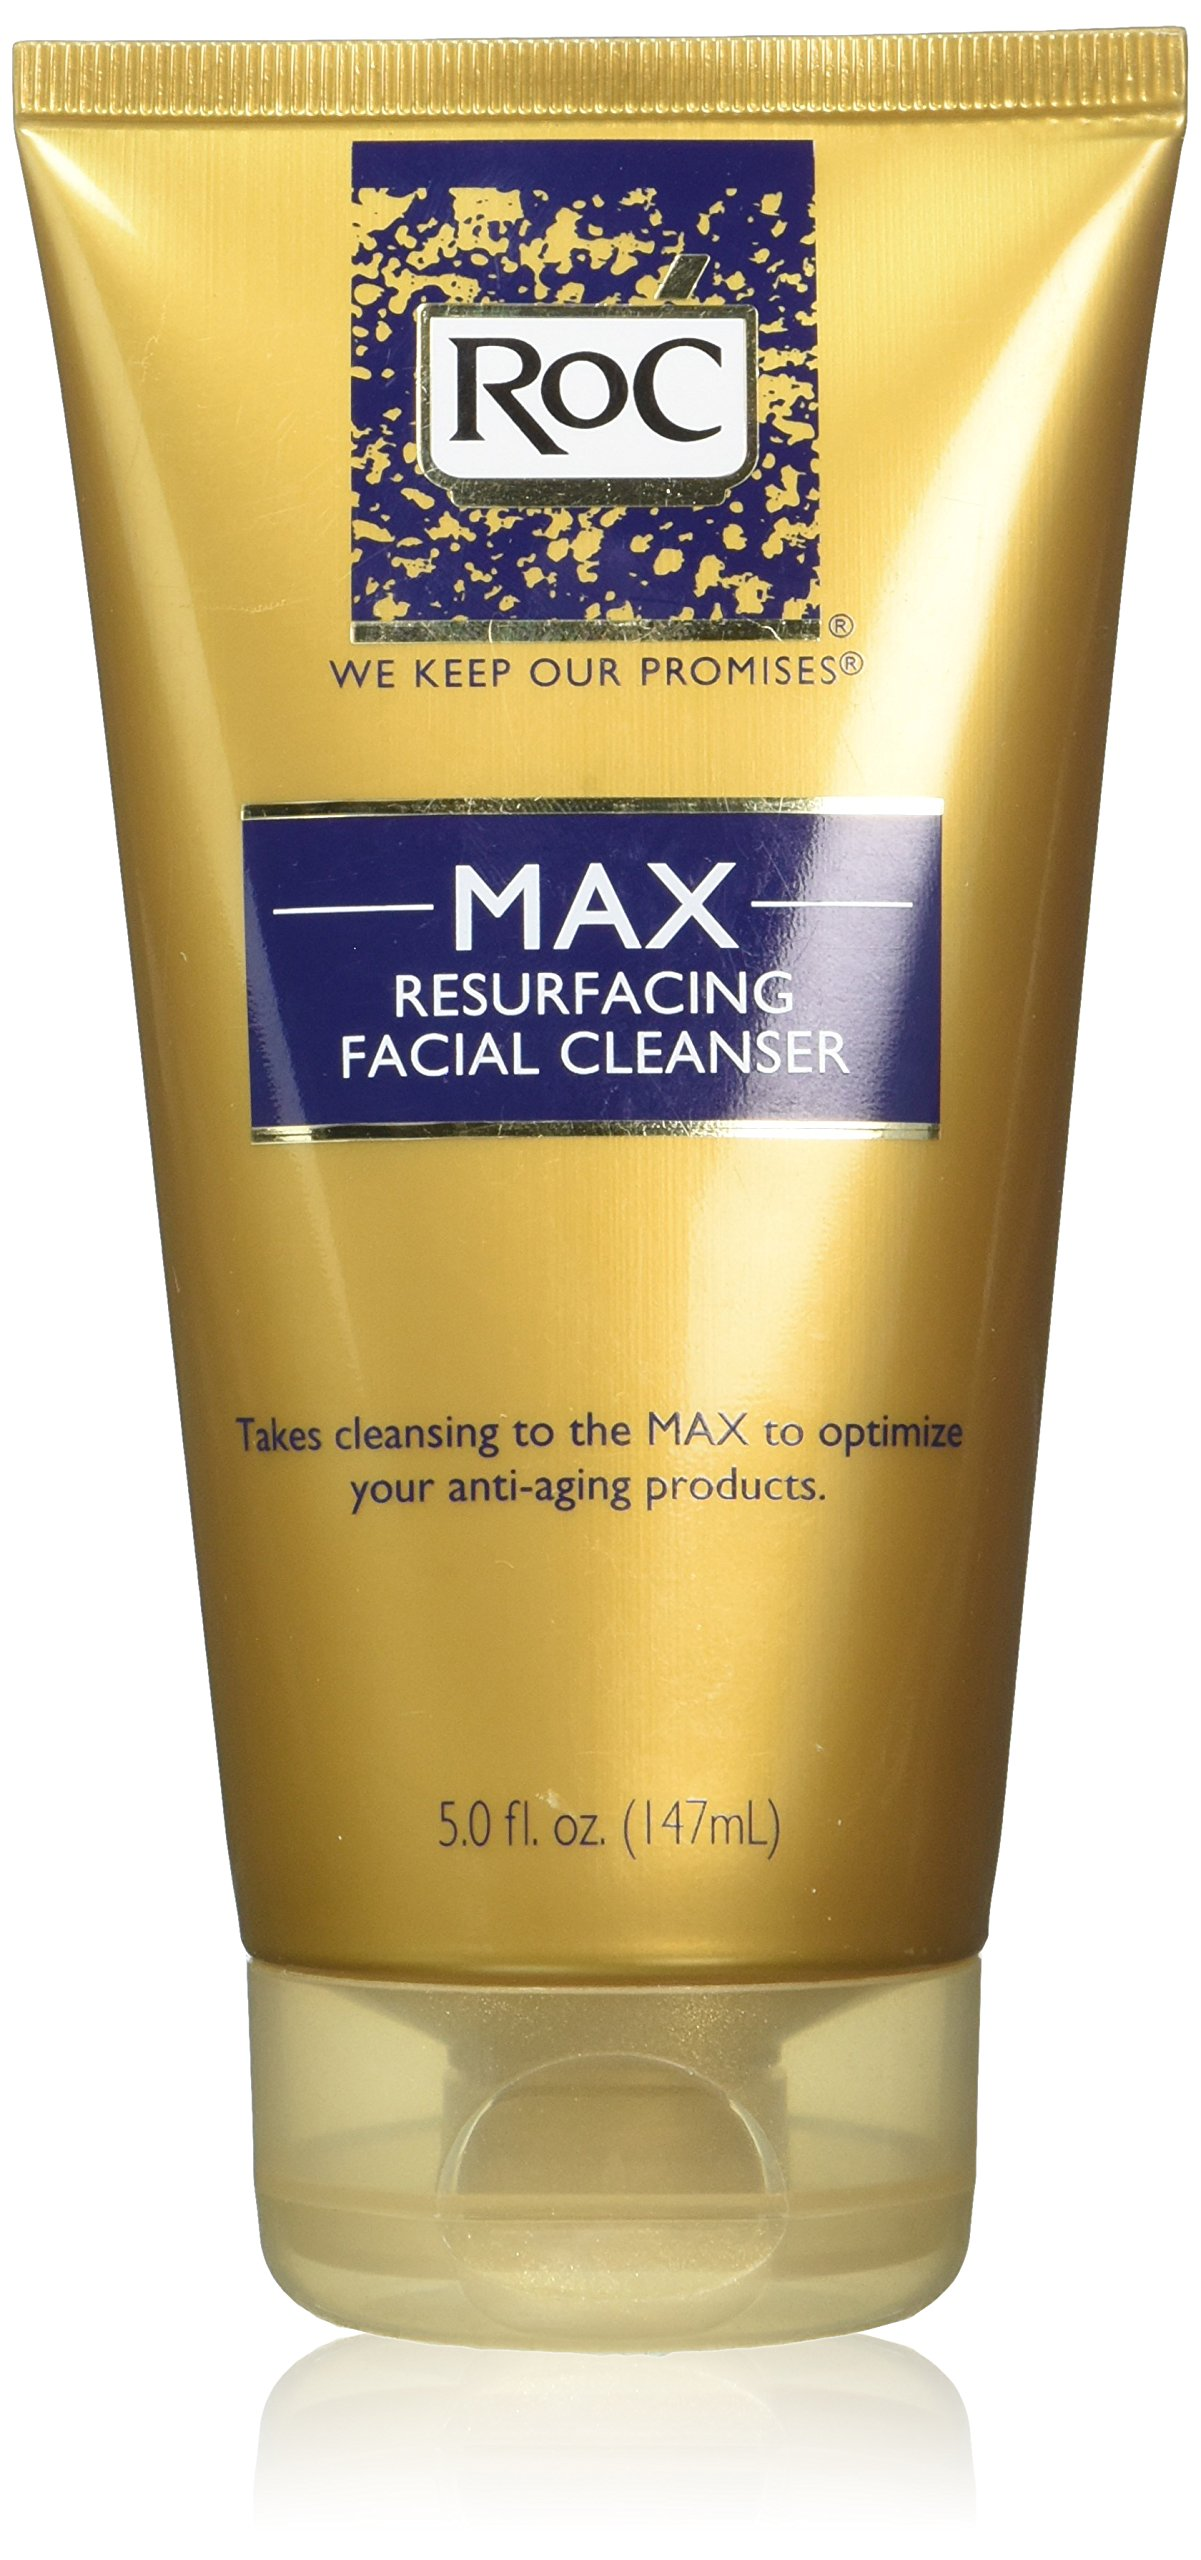 Roc MAX Resurfacing Facial Cleanser - Net Wt. 5 FL OZ (147 mL) - Pack of 2